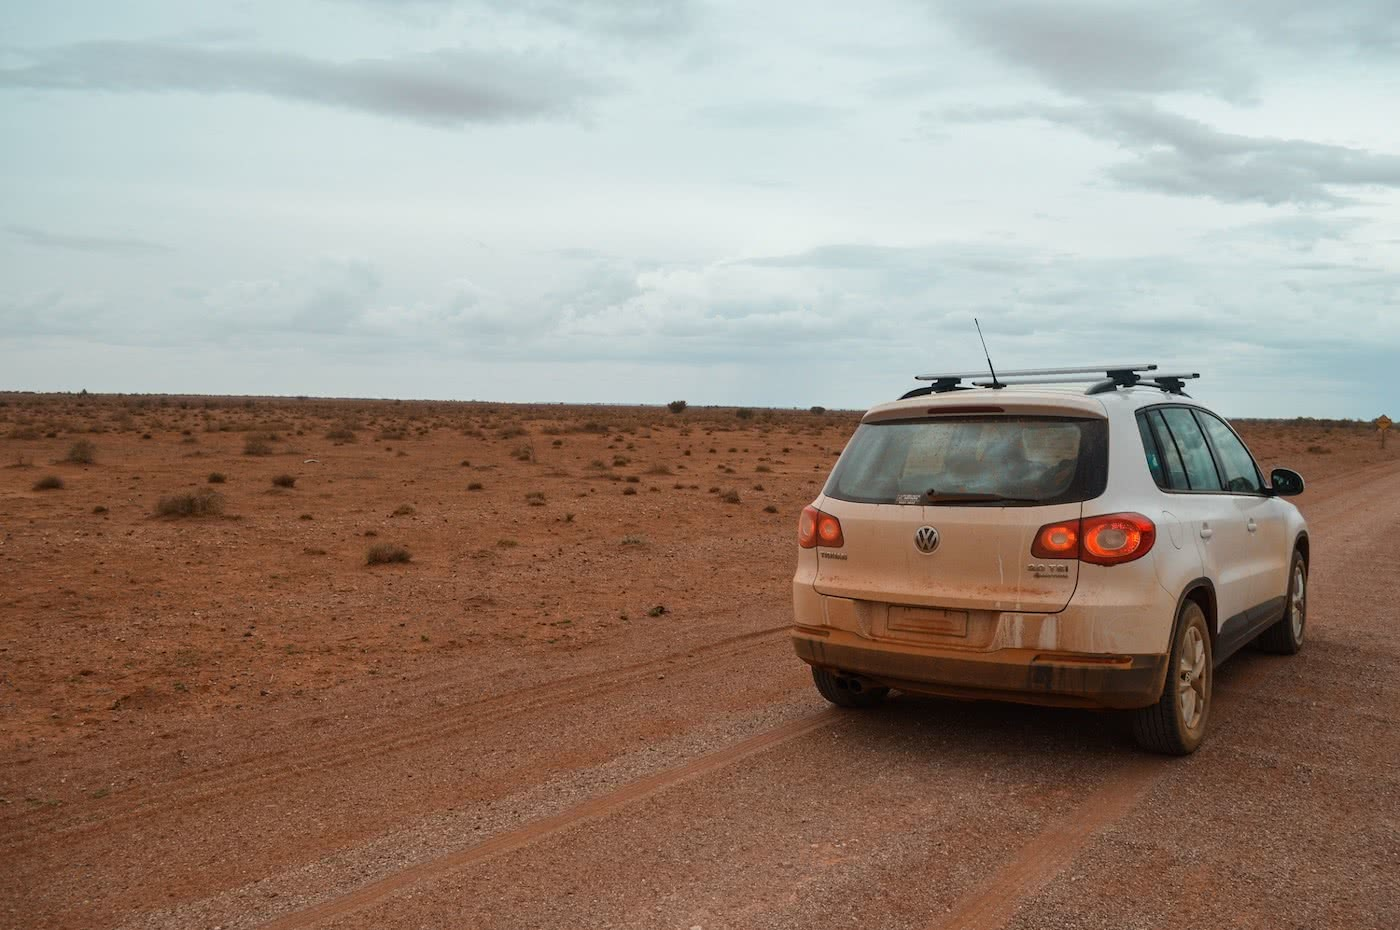 Taking Tiguan to the Outback // Gundabooka & Mutawintji National Parks (NSW) by Natalie Hardbattle, VW Tiguan, dusty car